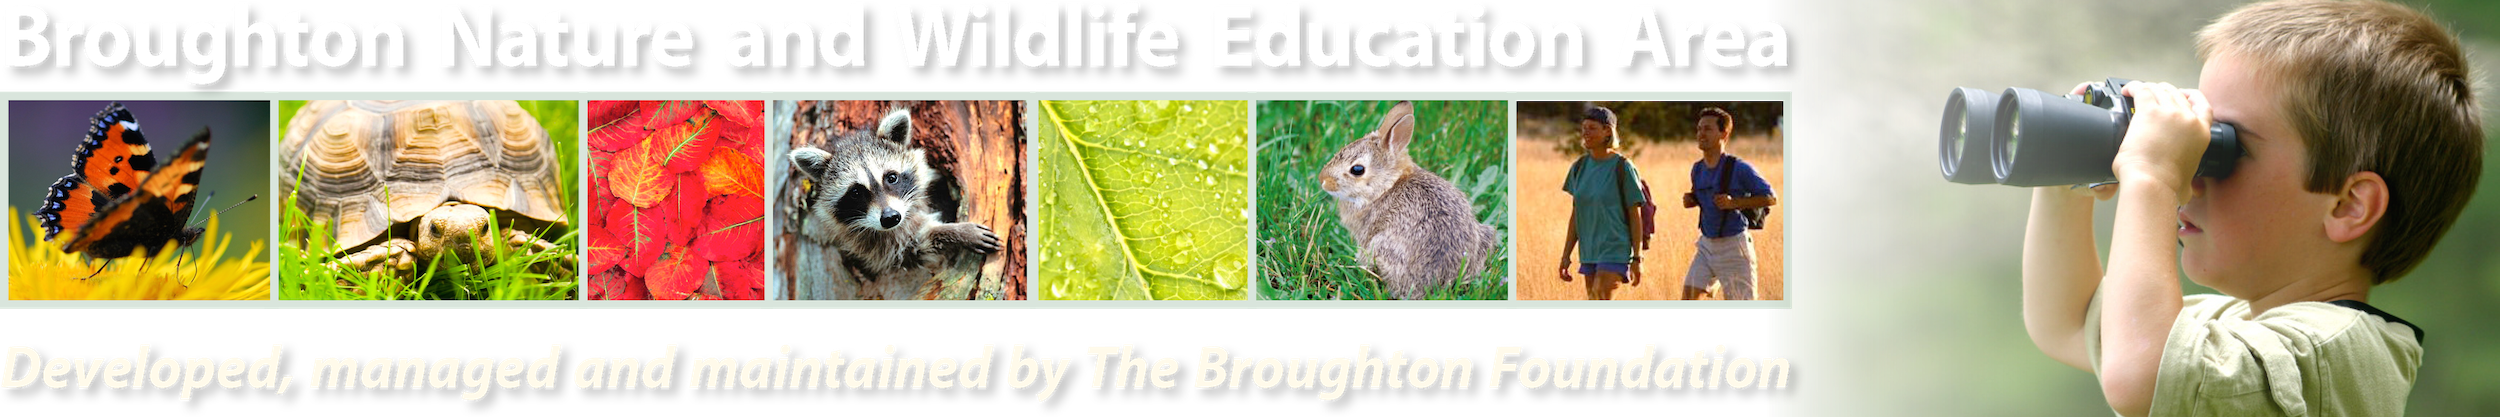 Broughton Nature and Wildlife Education Area